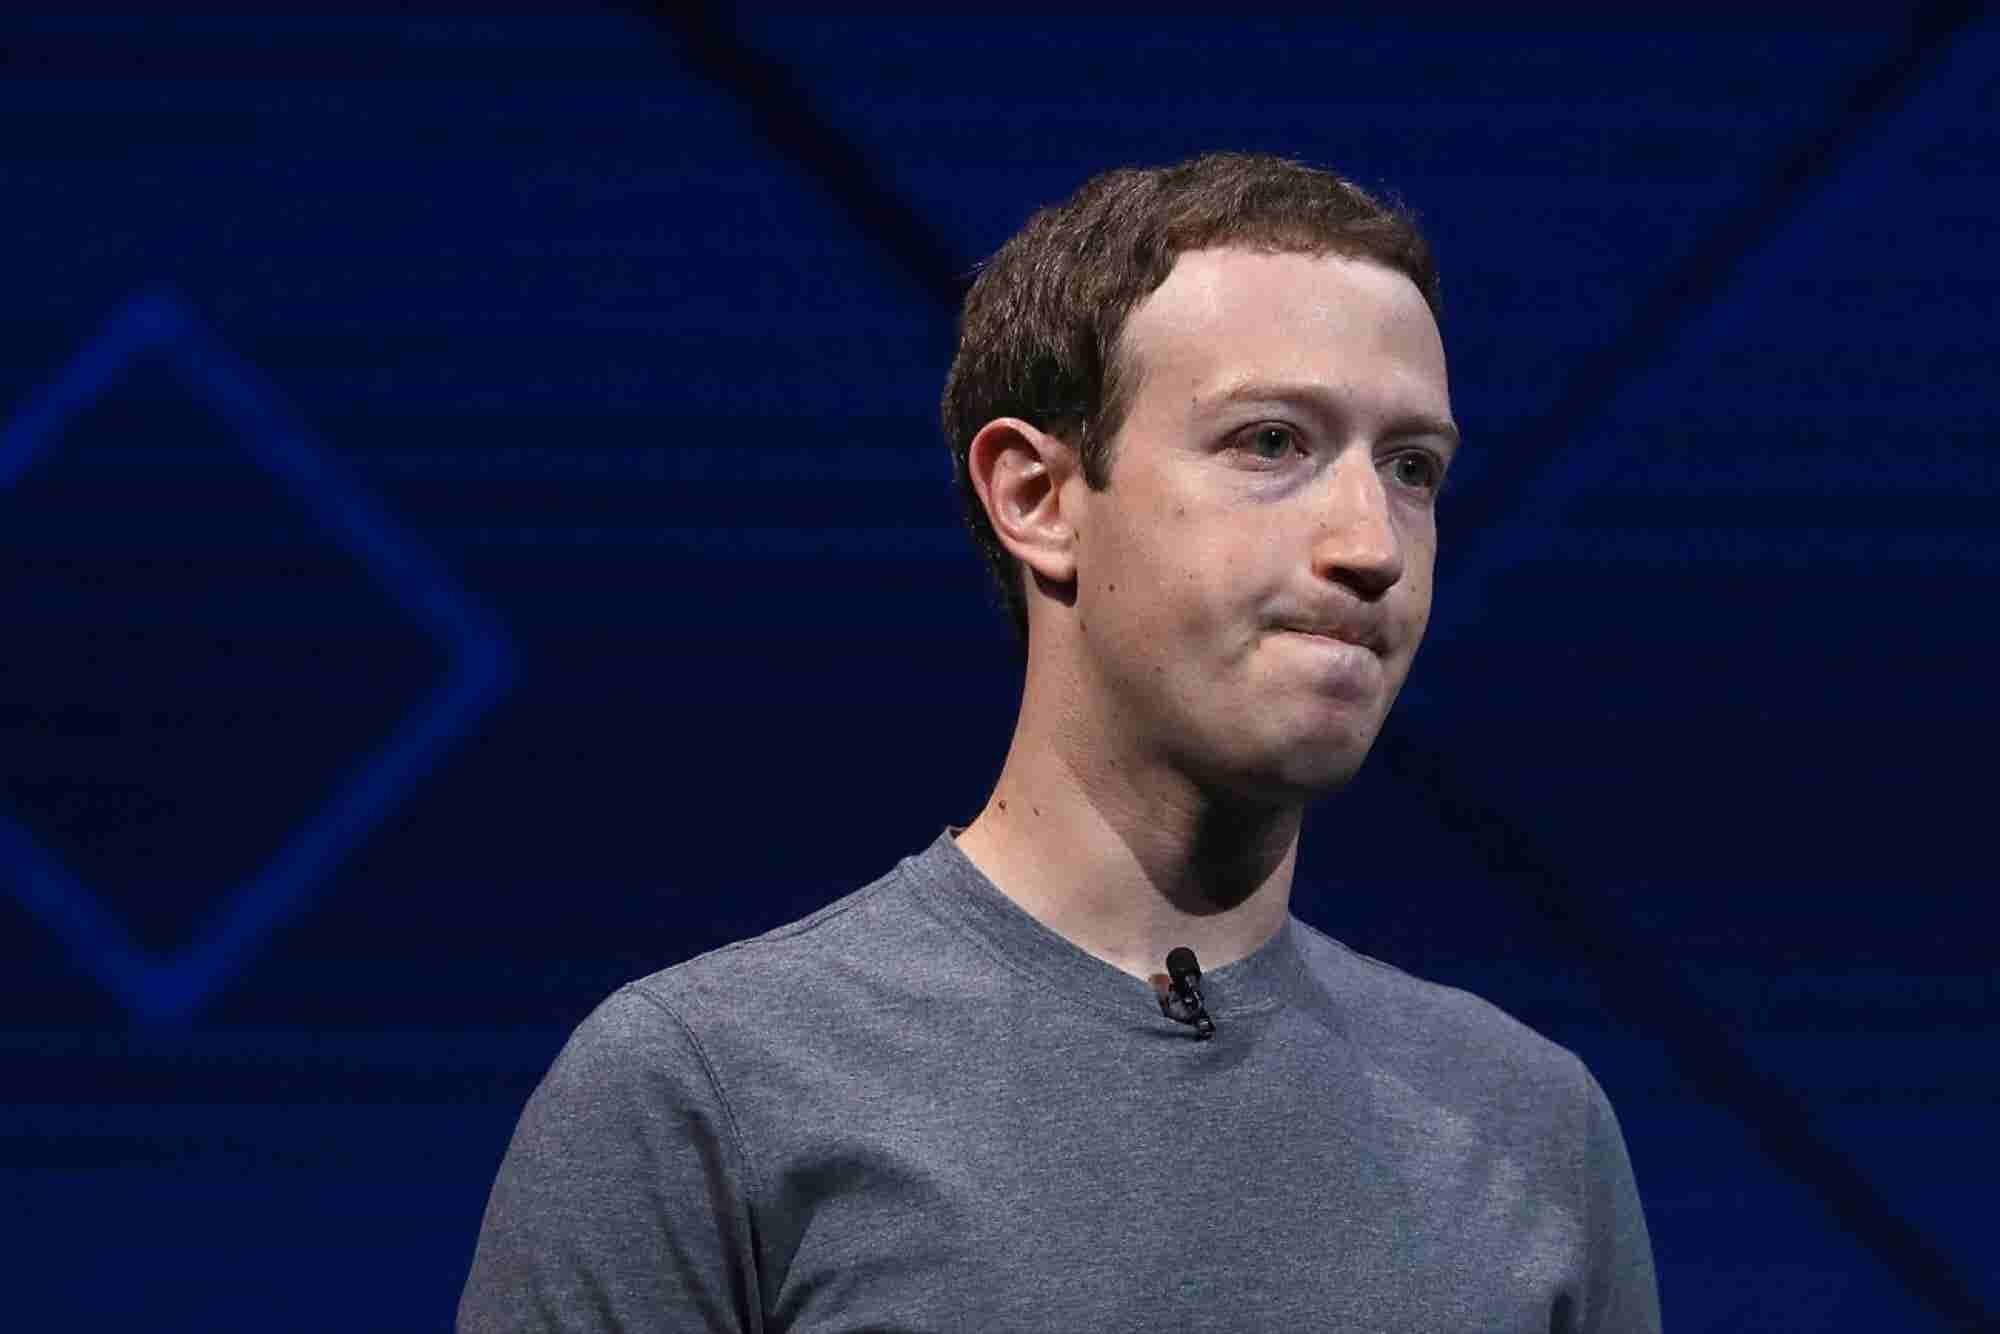 Facebook's Relationship Status With the Public Is 'It's Complicated': What Mark Zuckerberg Needs to Do to Get the Thumbs Up